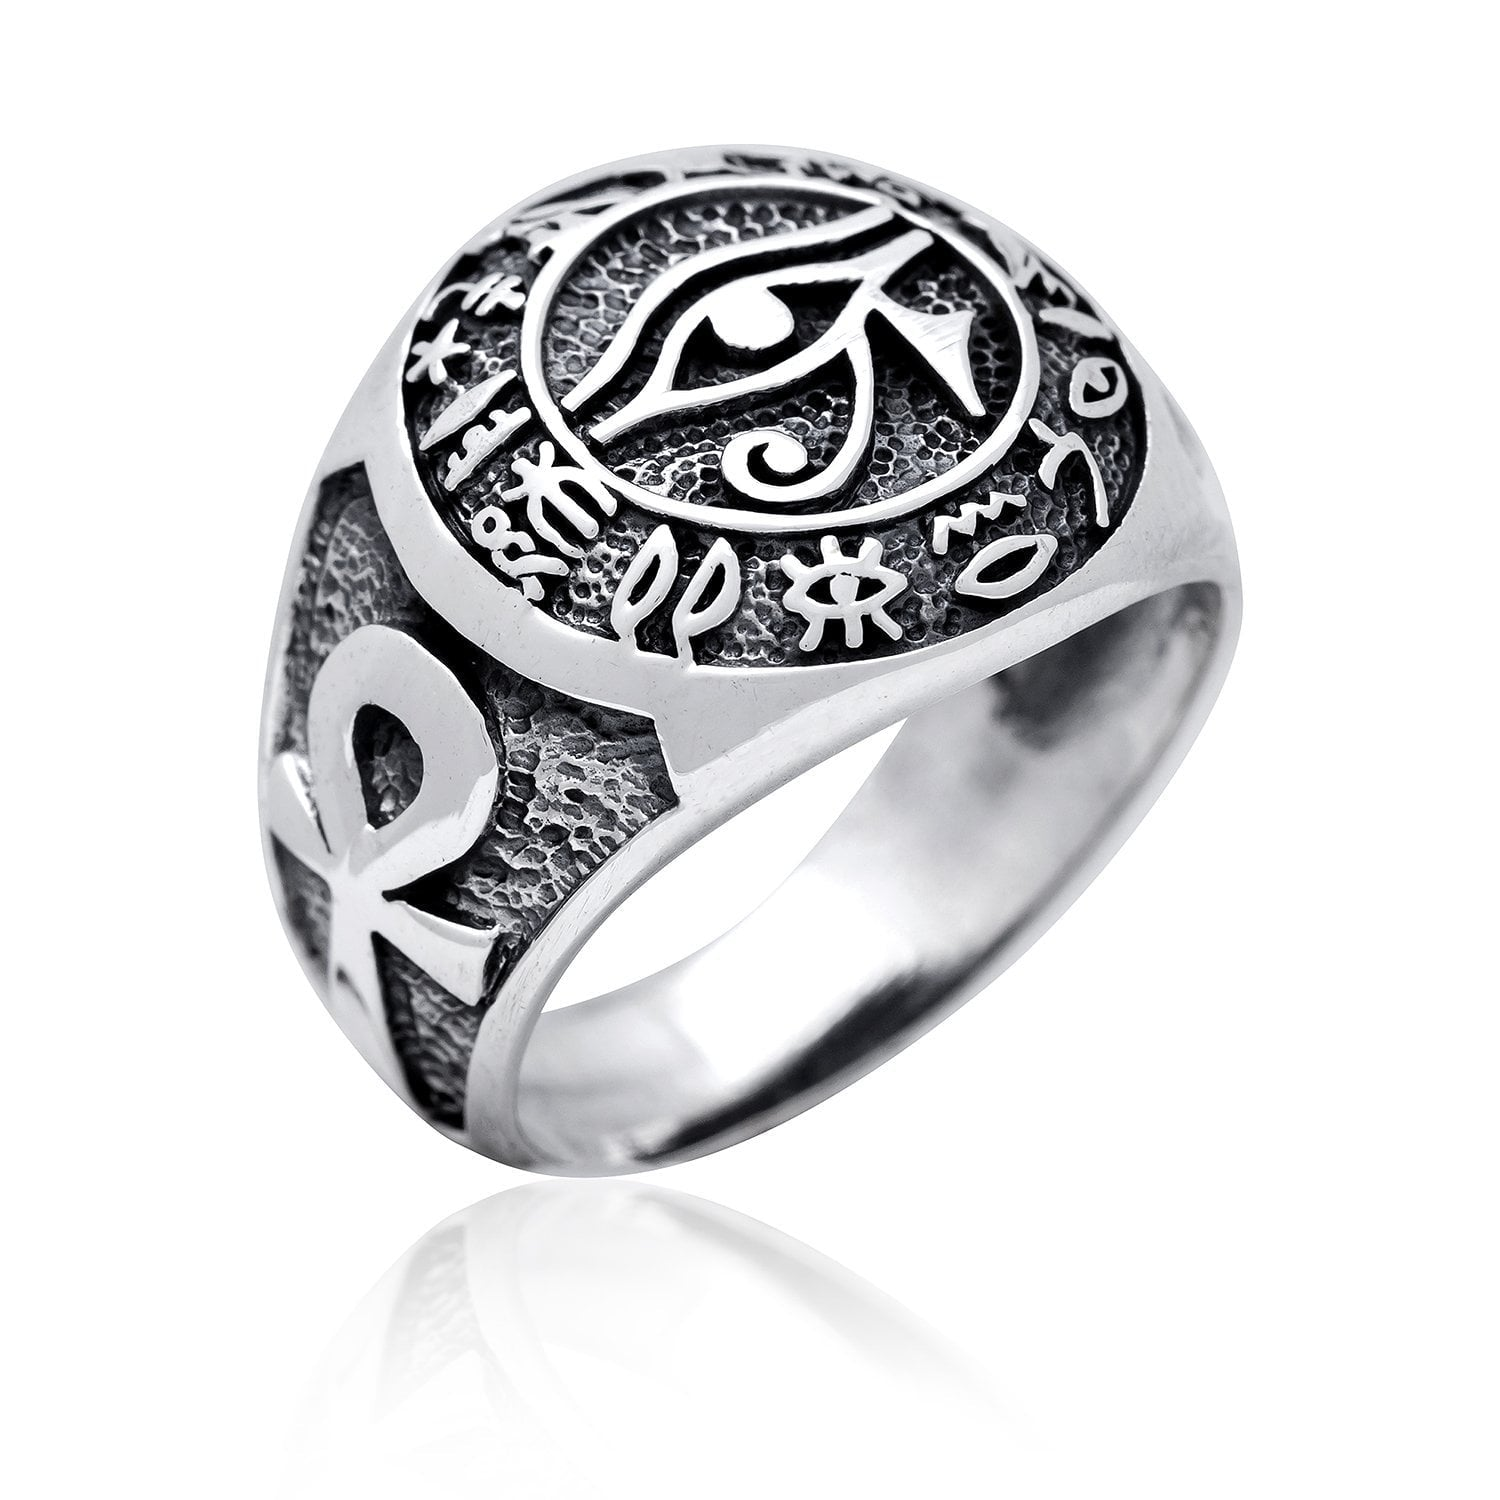 of enchating ideas gallery attachment wedding collection ancient rings egyptian on displaying full view